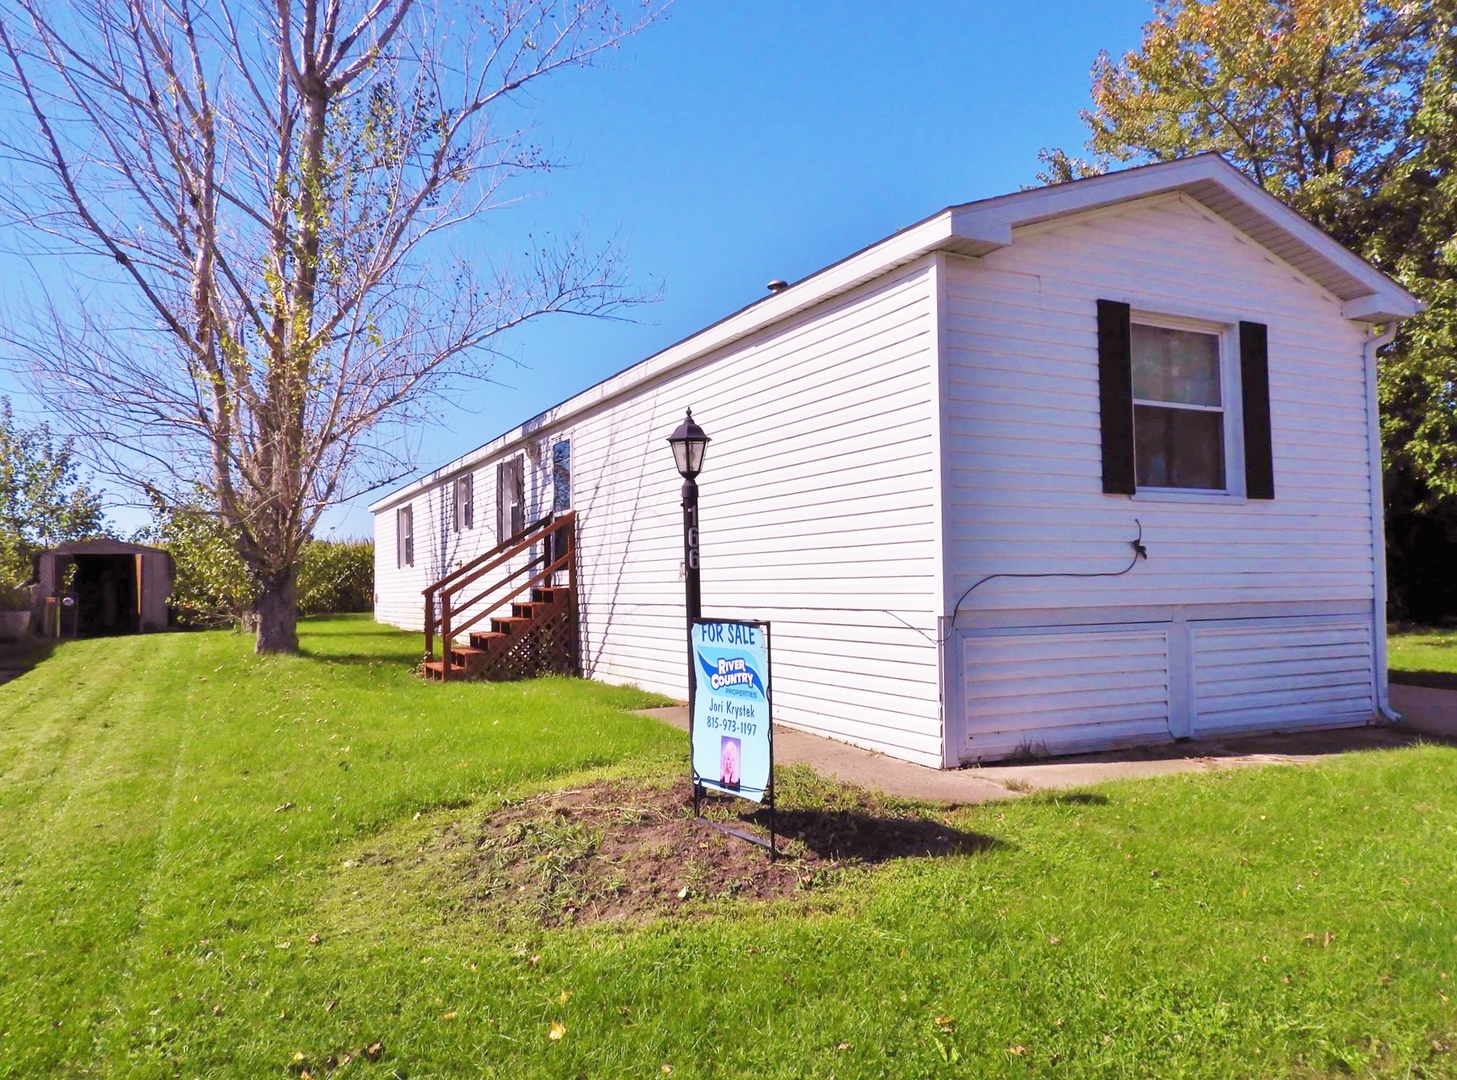 16 West Wasson 166, Amboy, Illinois, 61310